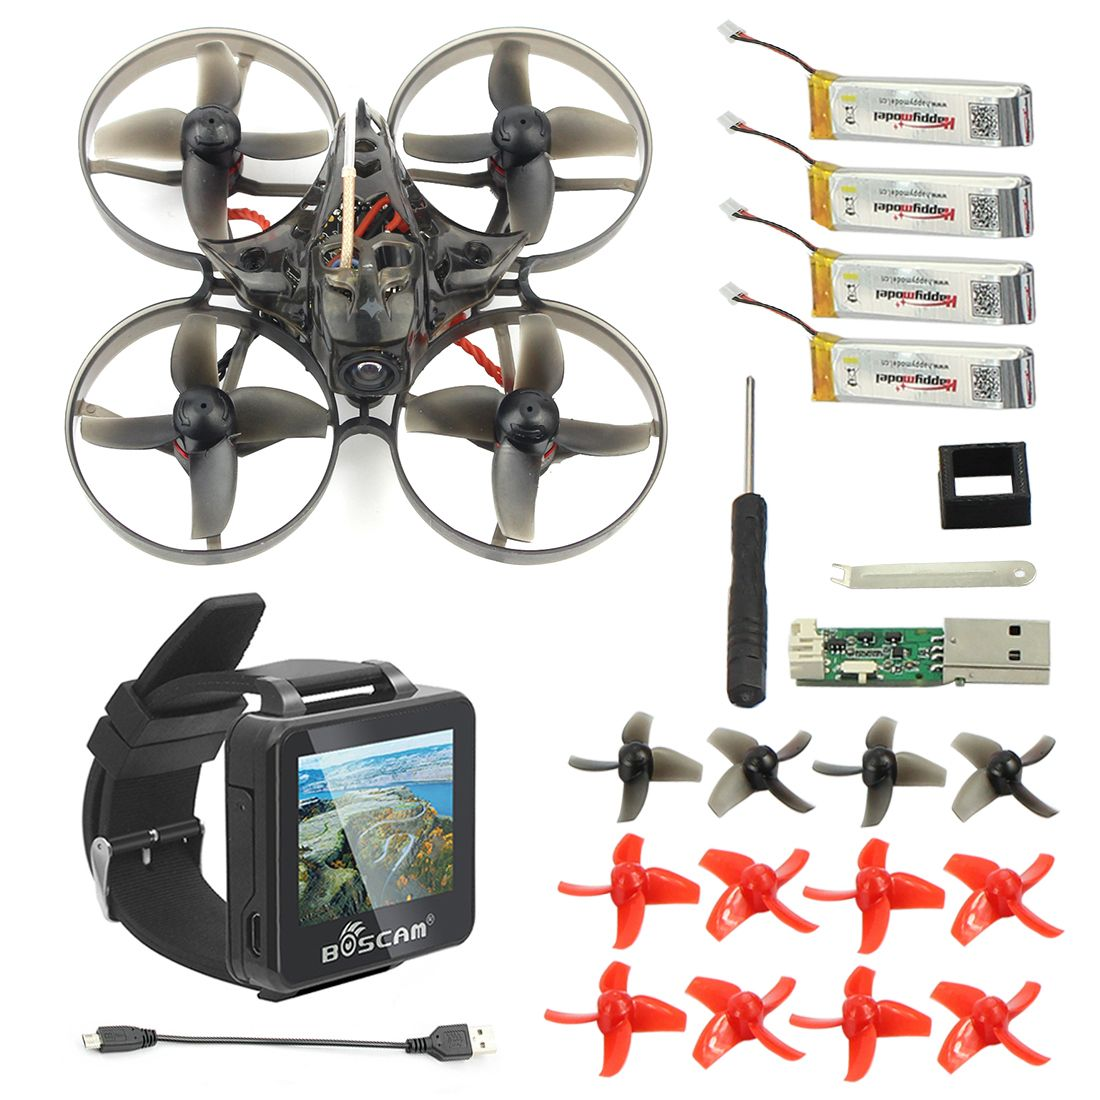 Mini Mobula 7 75mm BOSCAM BOS200RC FPV Watch Crazybee F3 Pro OSD 2S BWhoop Racing Drone Quadcopter BB2 ESC BNF Frsky Flysky